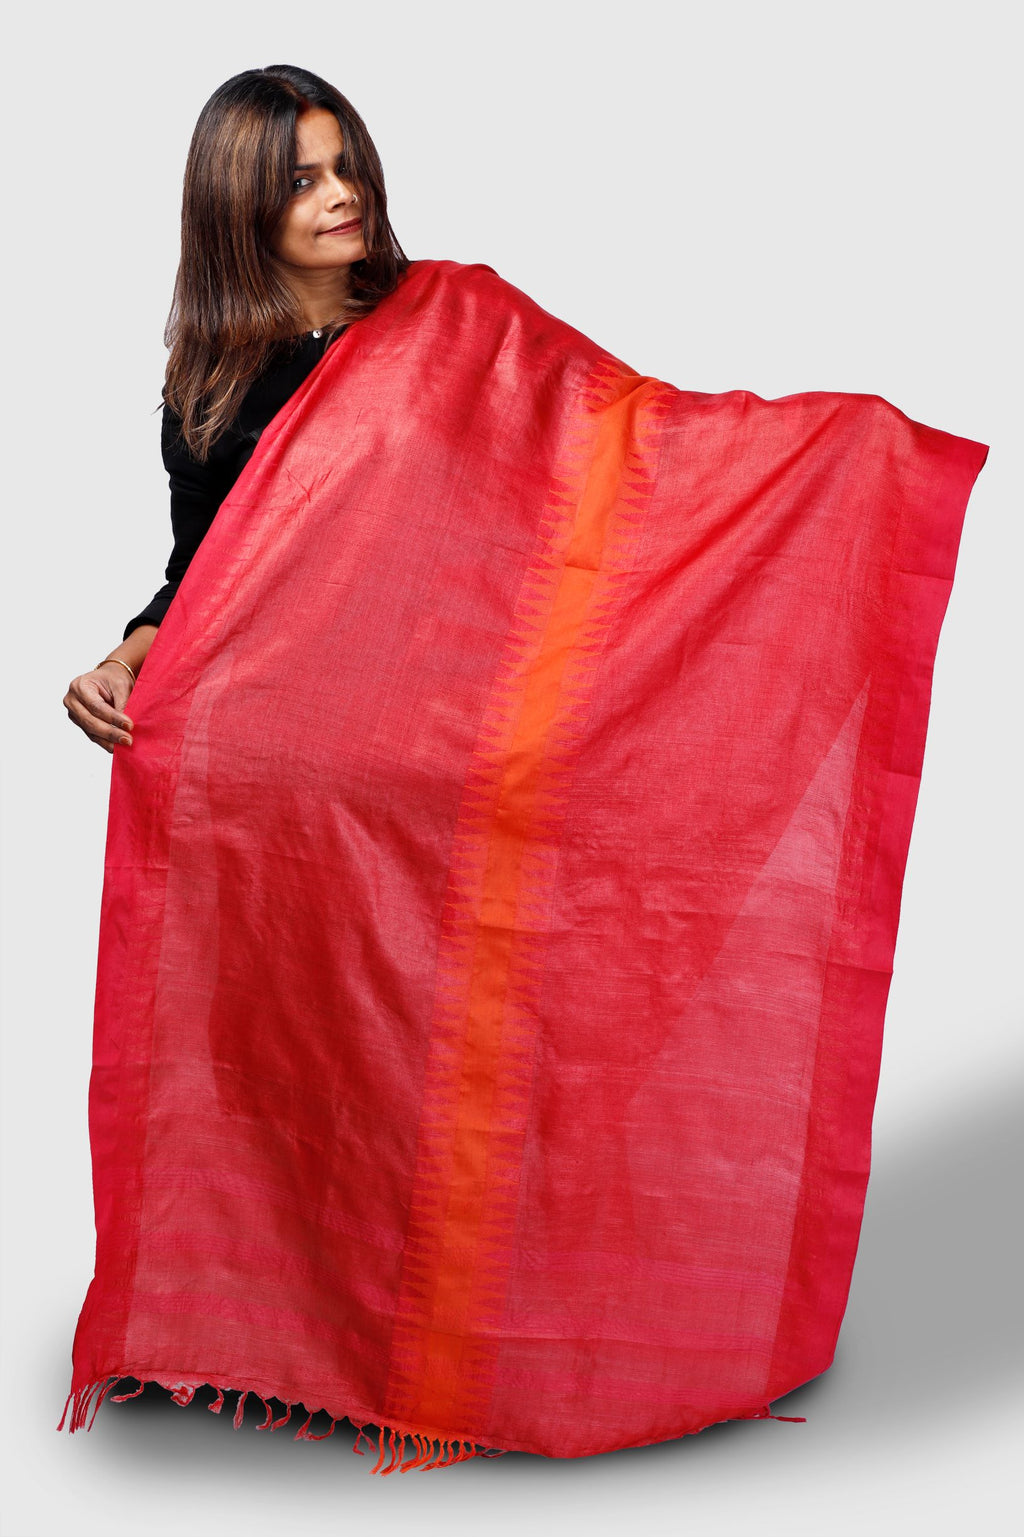 Tomato Red with Orange Temple Border Tassar - Kapaas N Resham